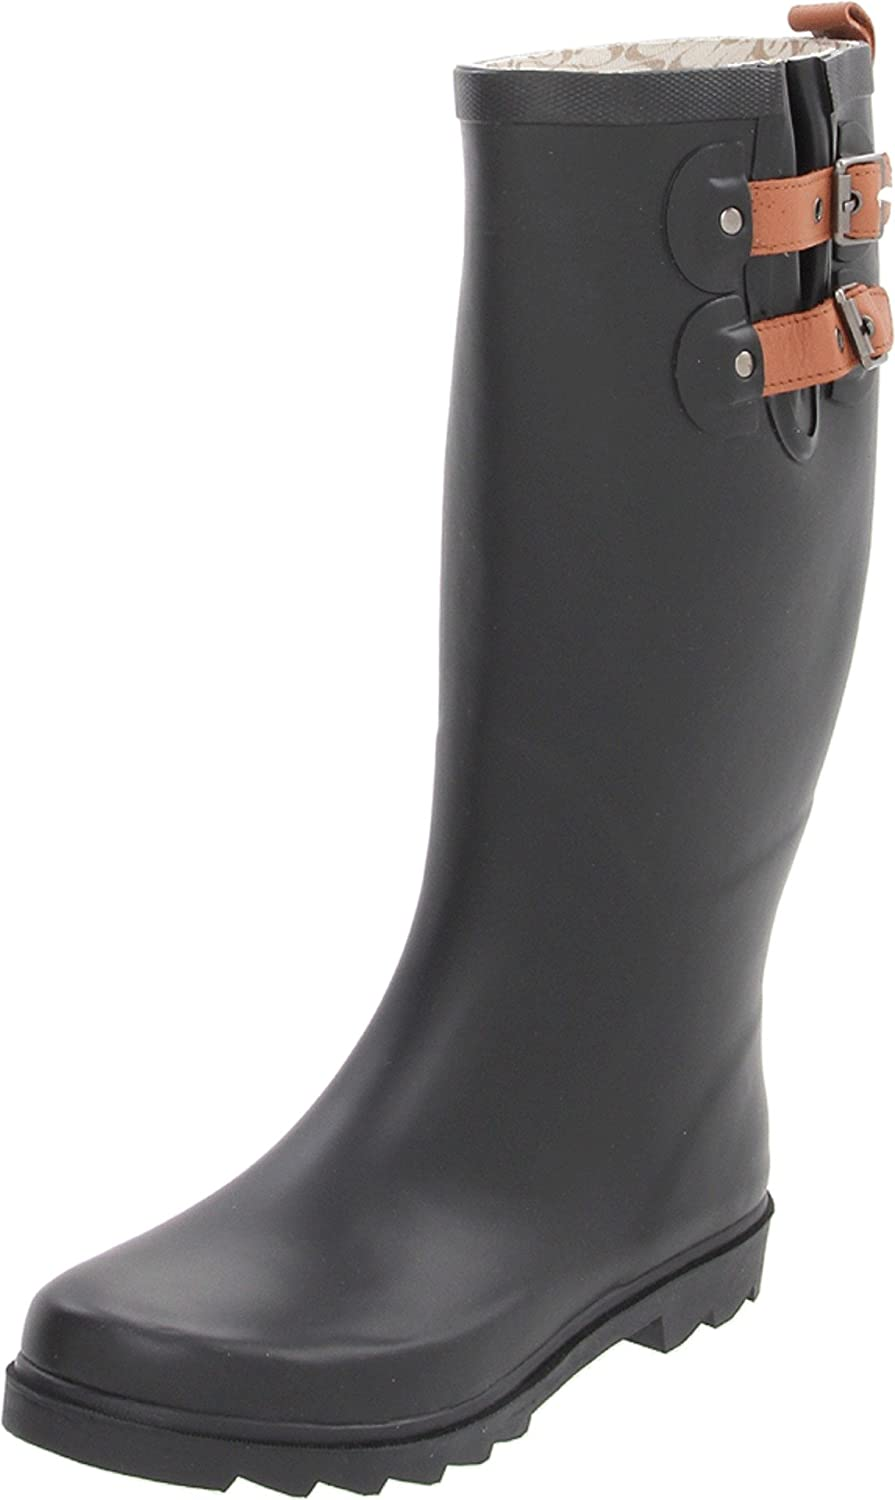 Chooka Rain Boots - Cr Boot